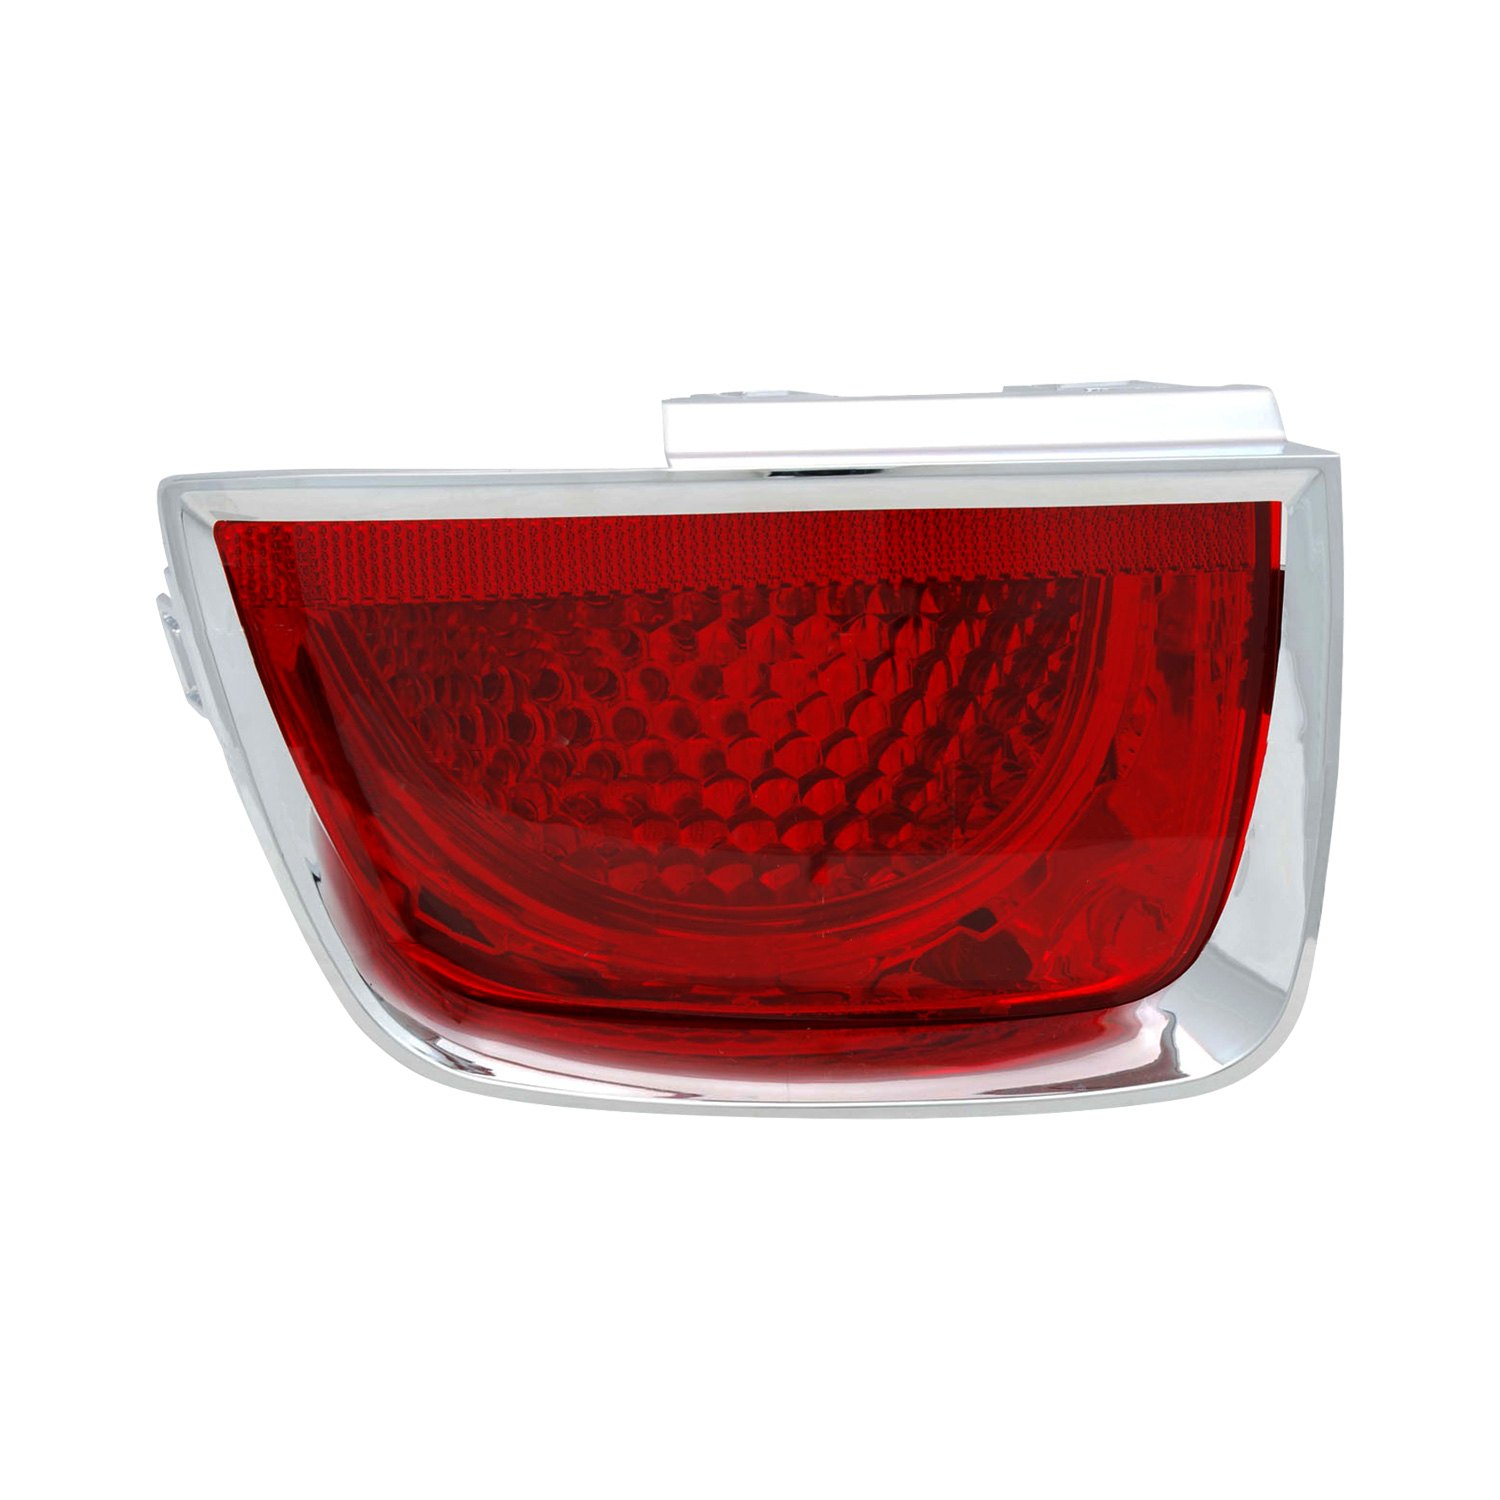 TYC 11 6532 00 1 Driver Side Outer NSF Certified Replacement Tail Light